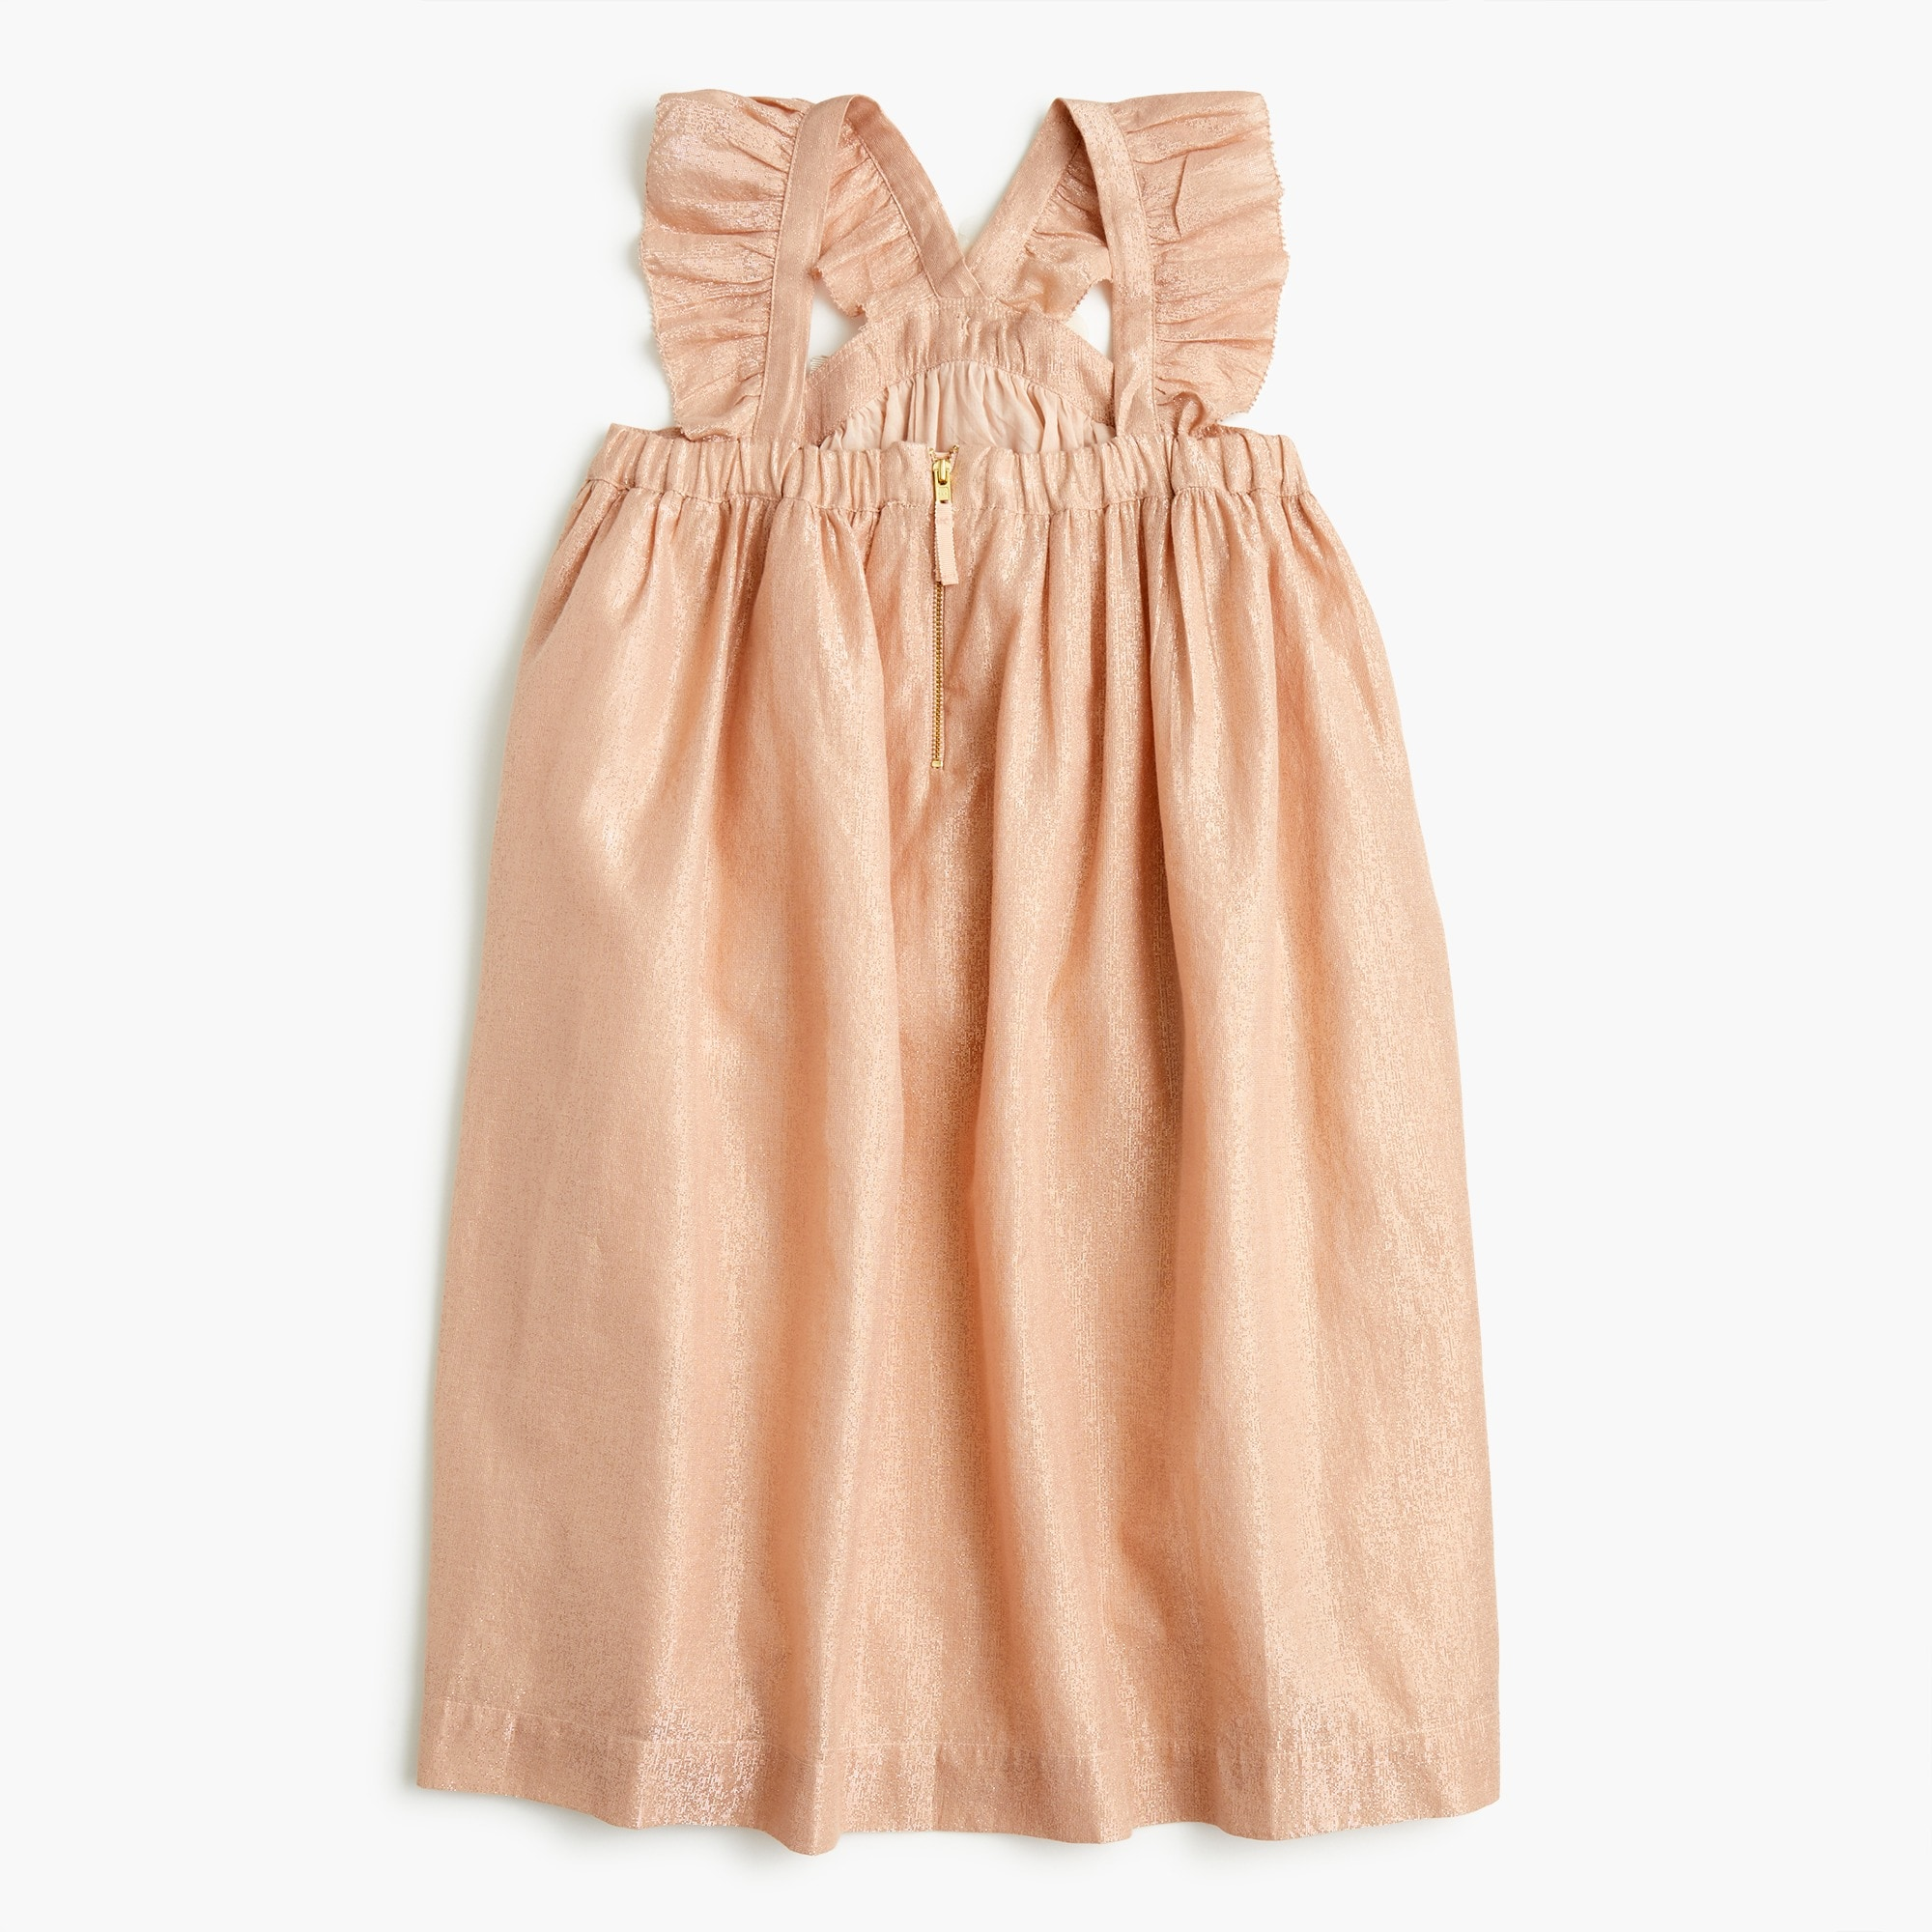 Image 3 for Girls' ruffle-strap dress